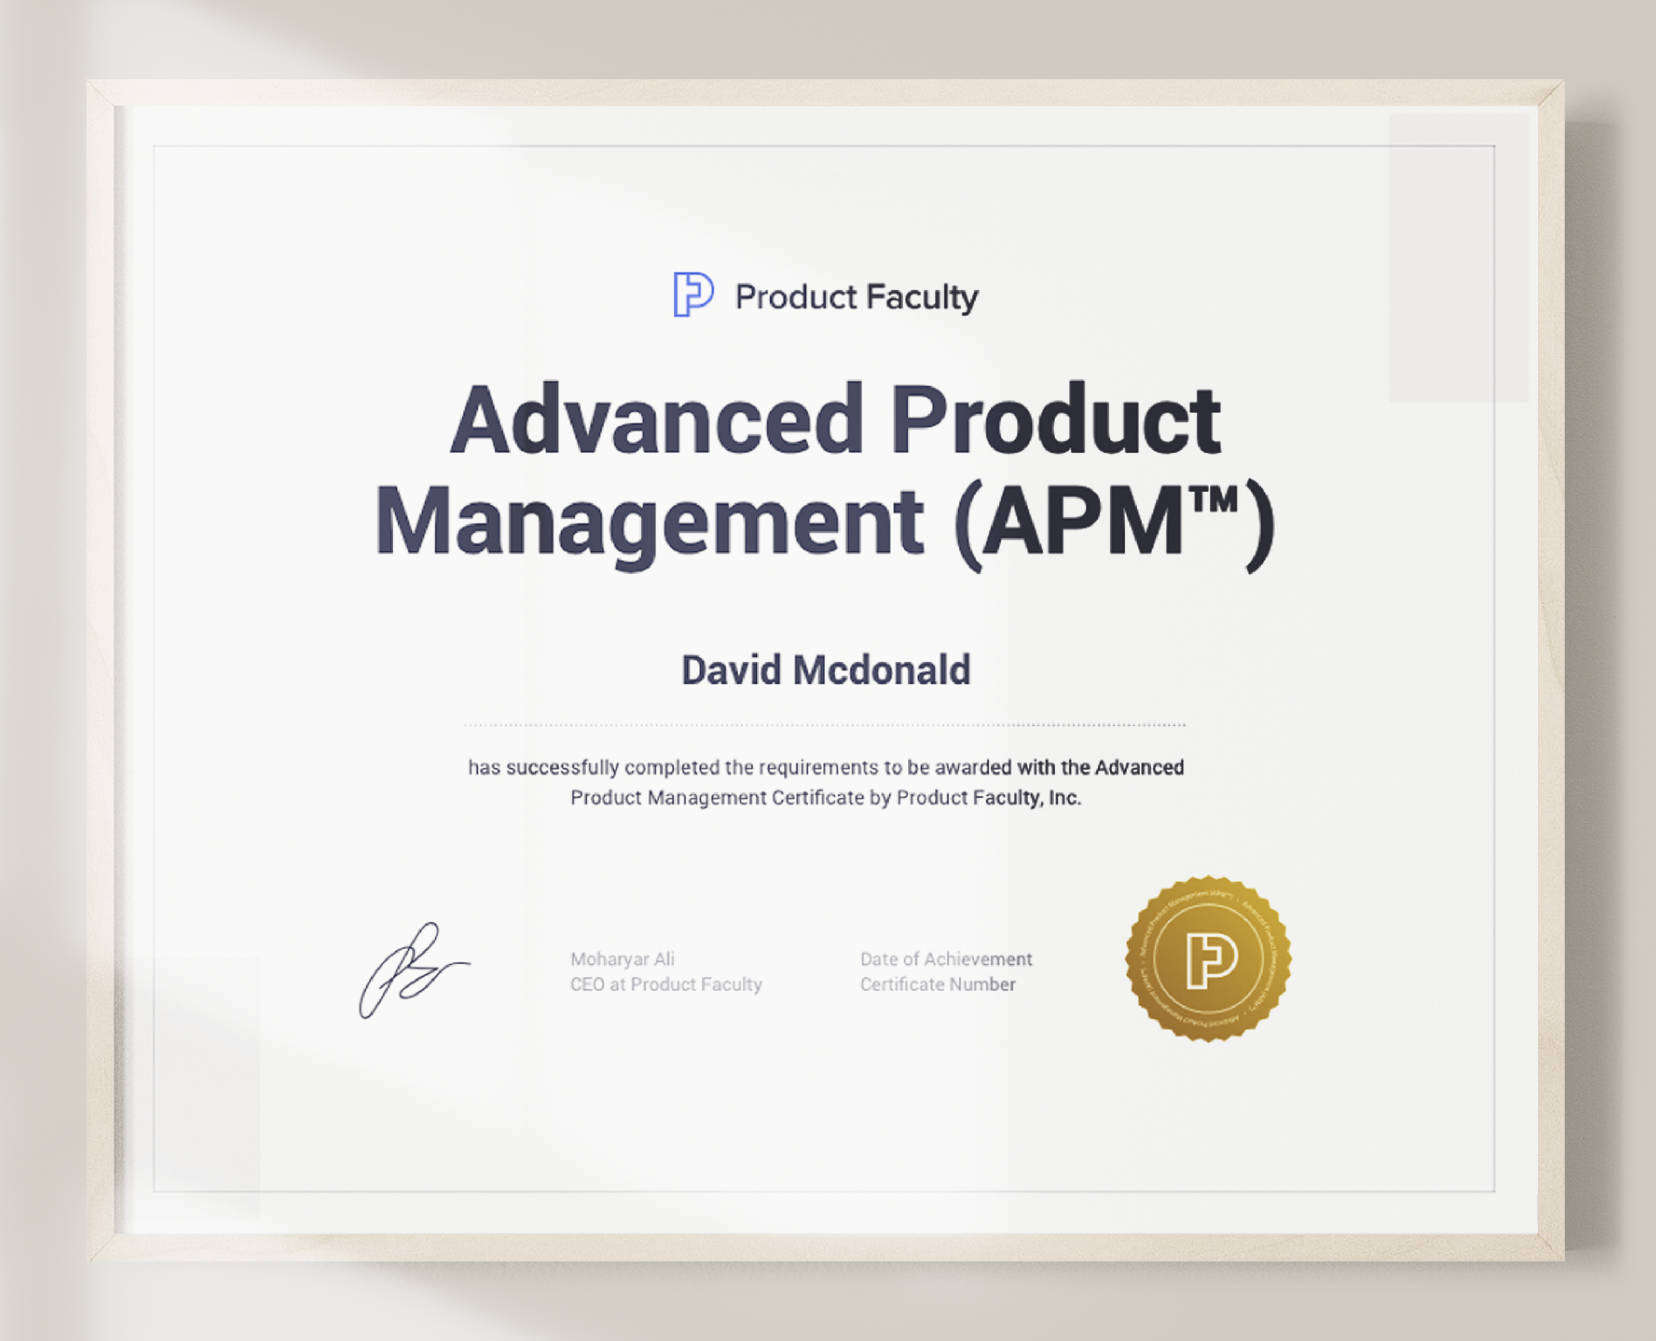 Advanced Product Management Certification   Product Faculty